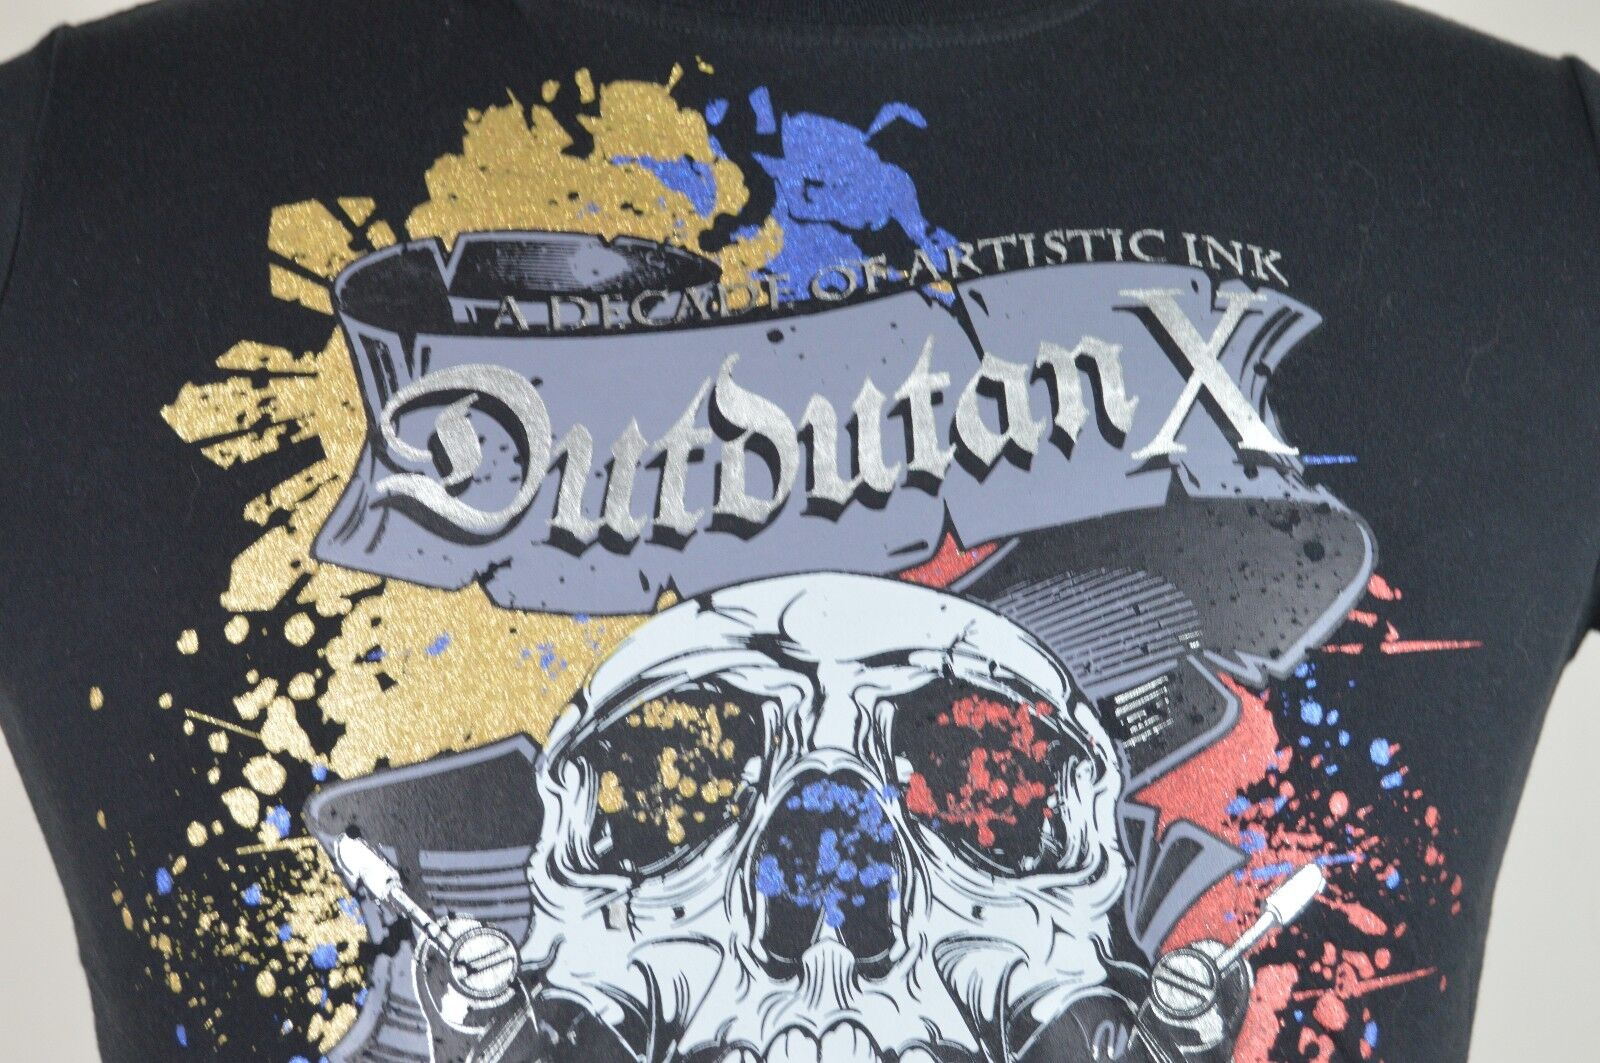 Dutdutan X Decade of Artistic Ink Tattoo Expo S Mens Bl